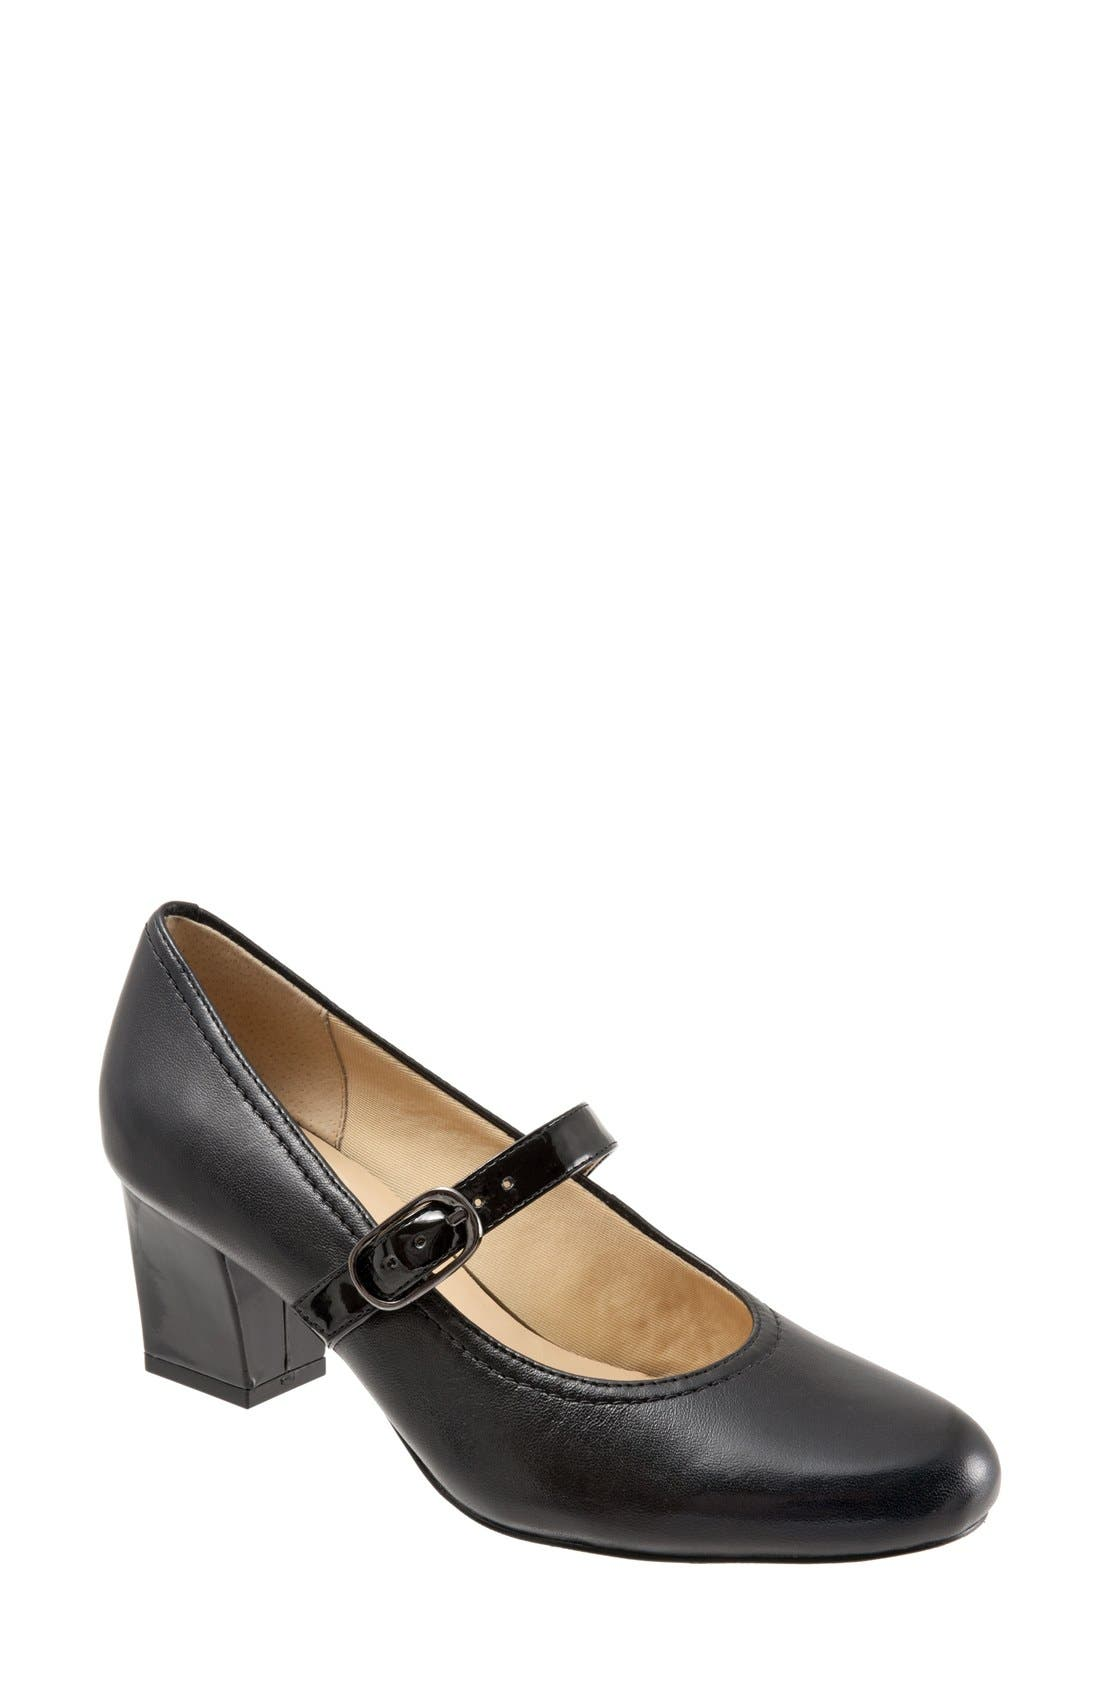 TROTTERS 'Candice' Mary Jane Pump, Main, color, BLACK LEATHER